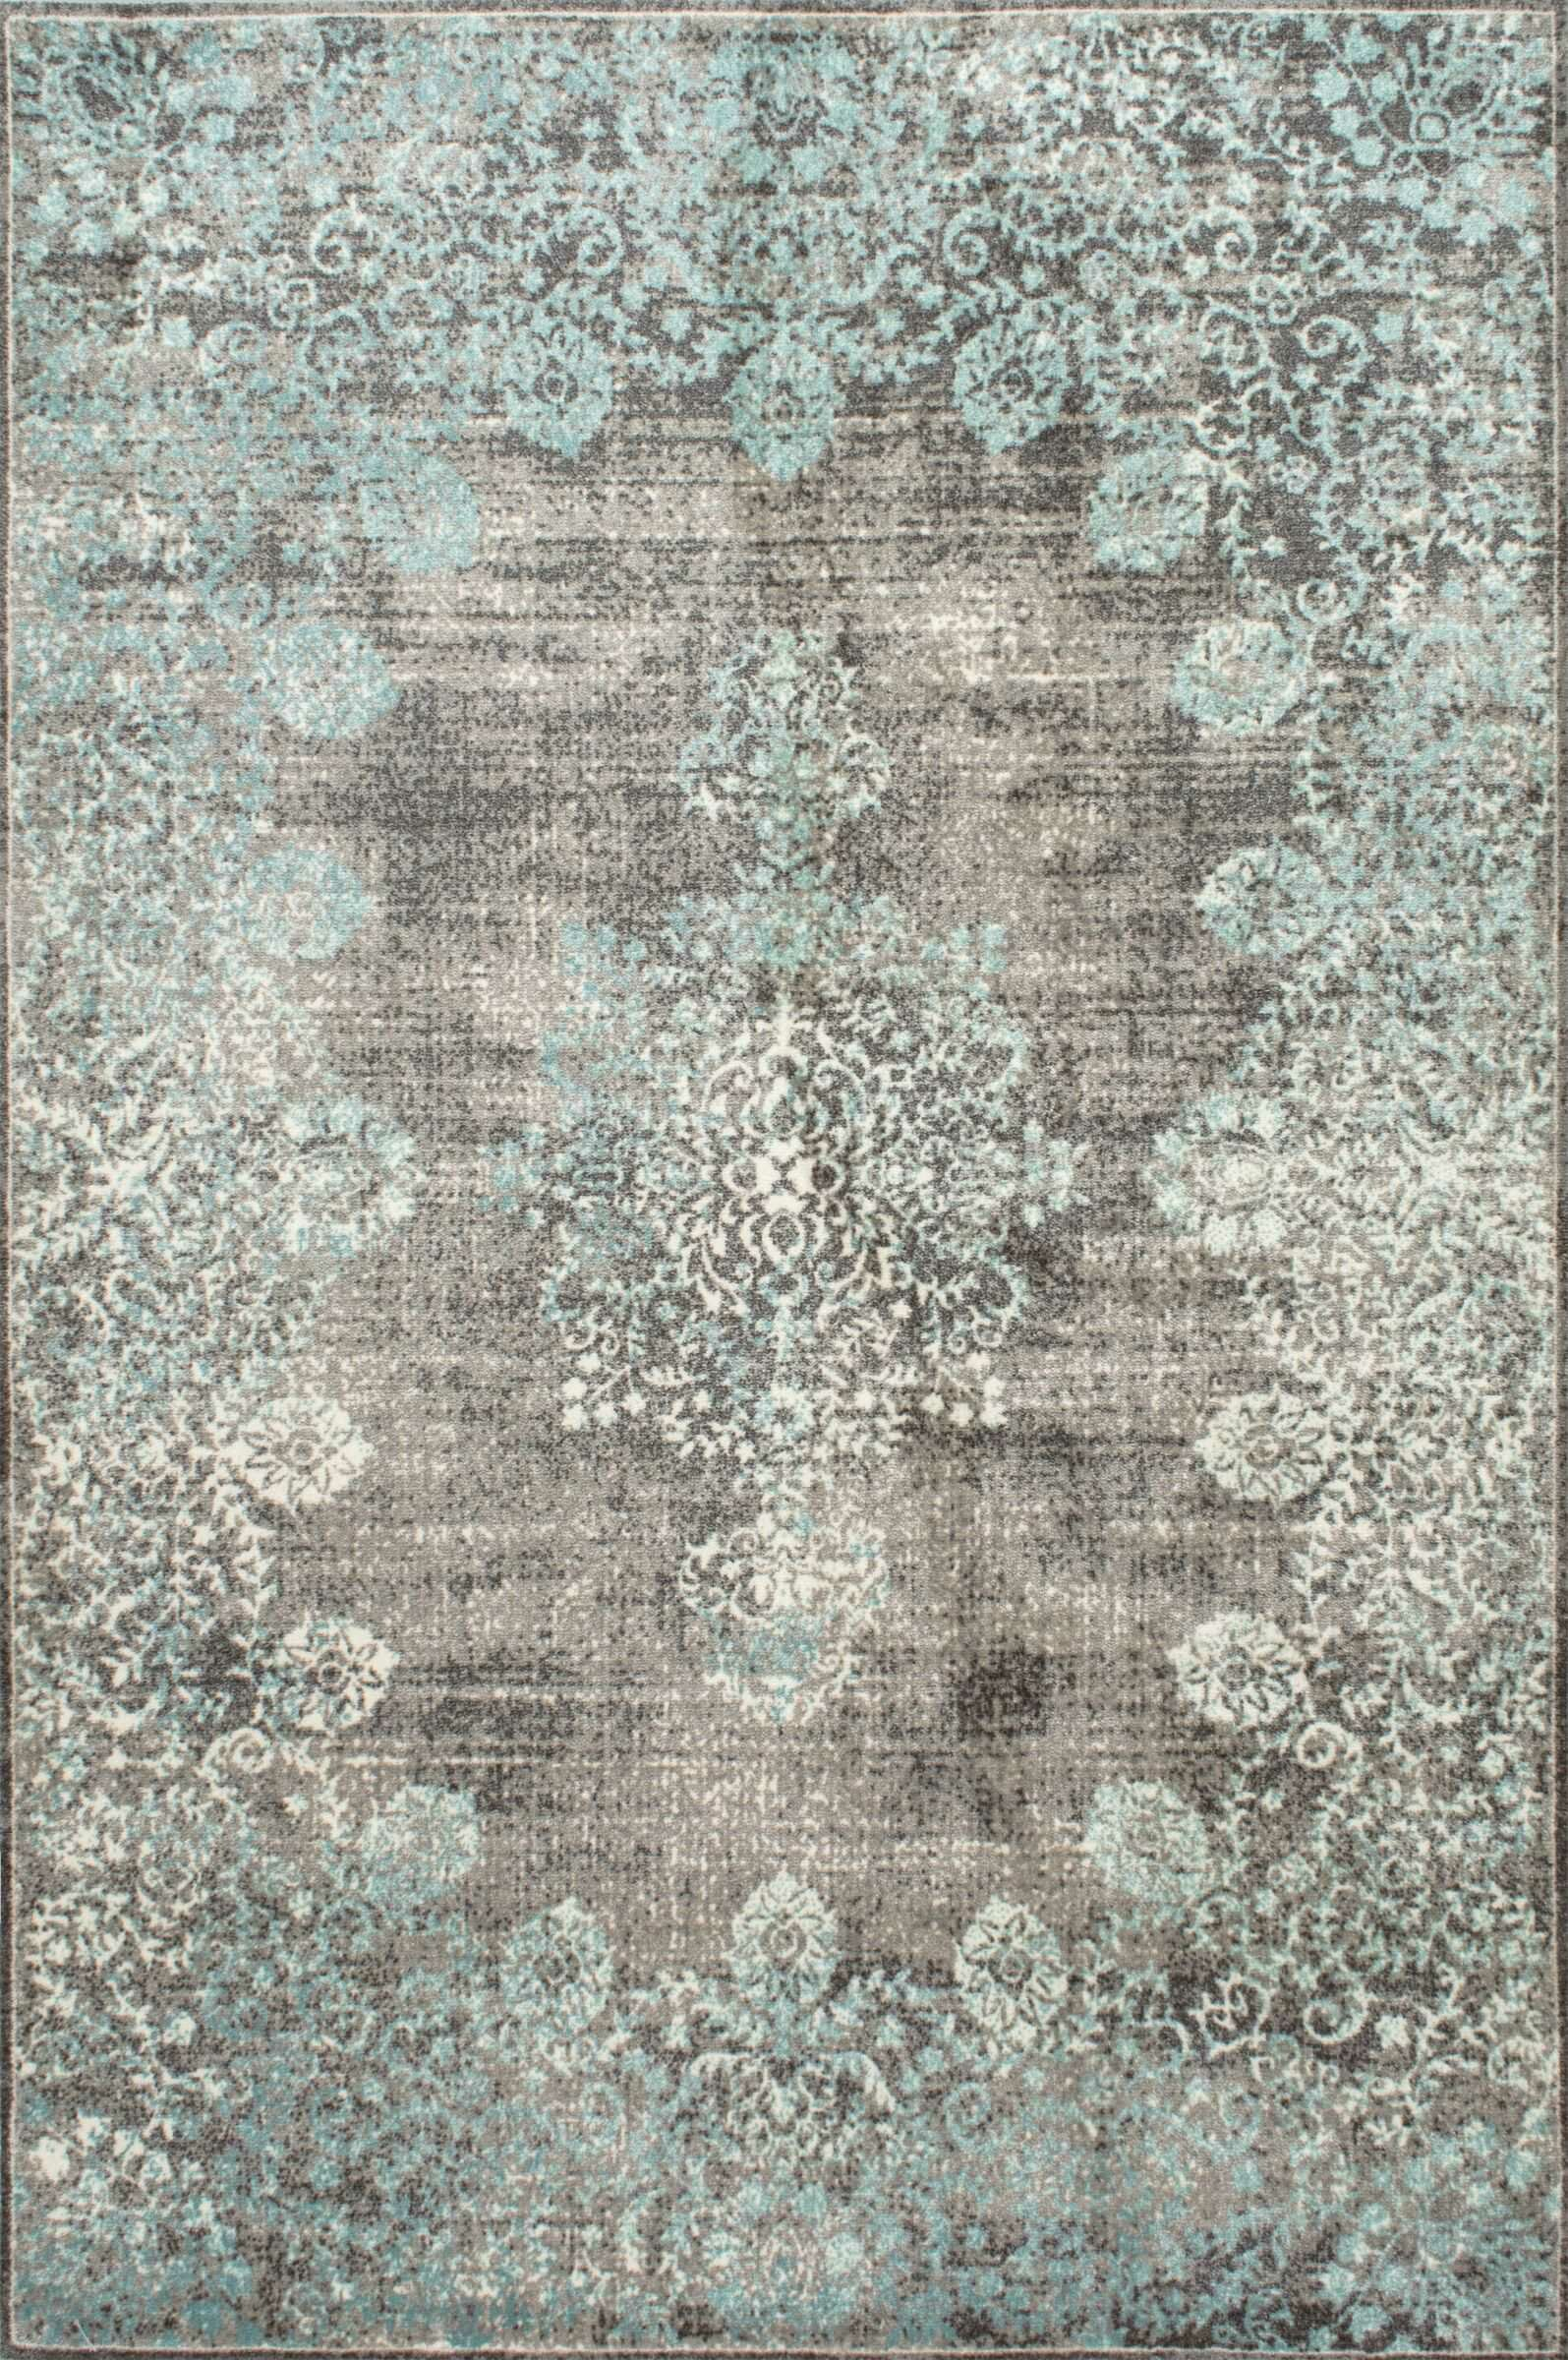 David Turquoise Blue Gray Beige Area Rug Reviews Birch Lane